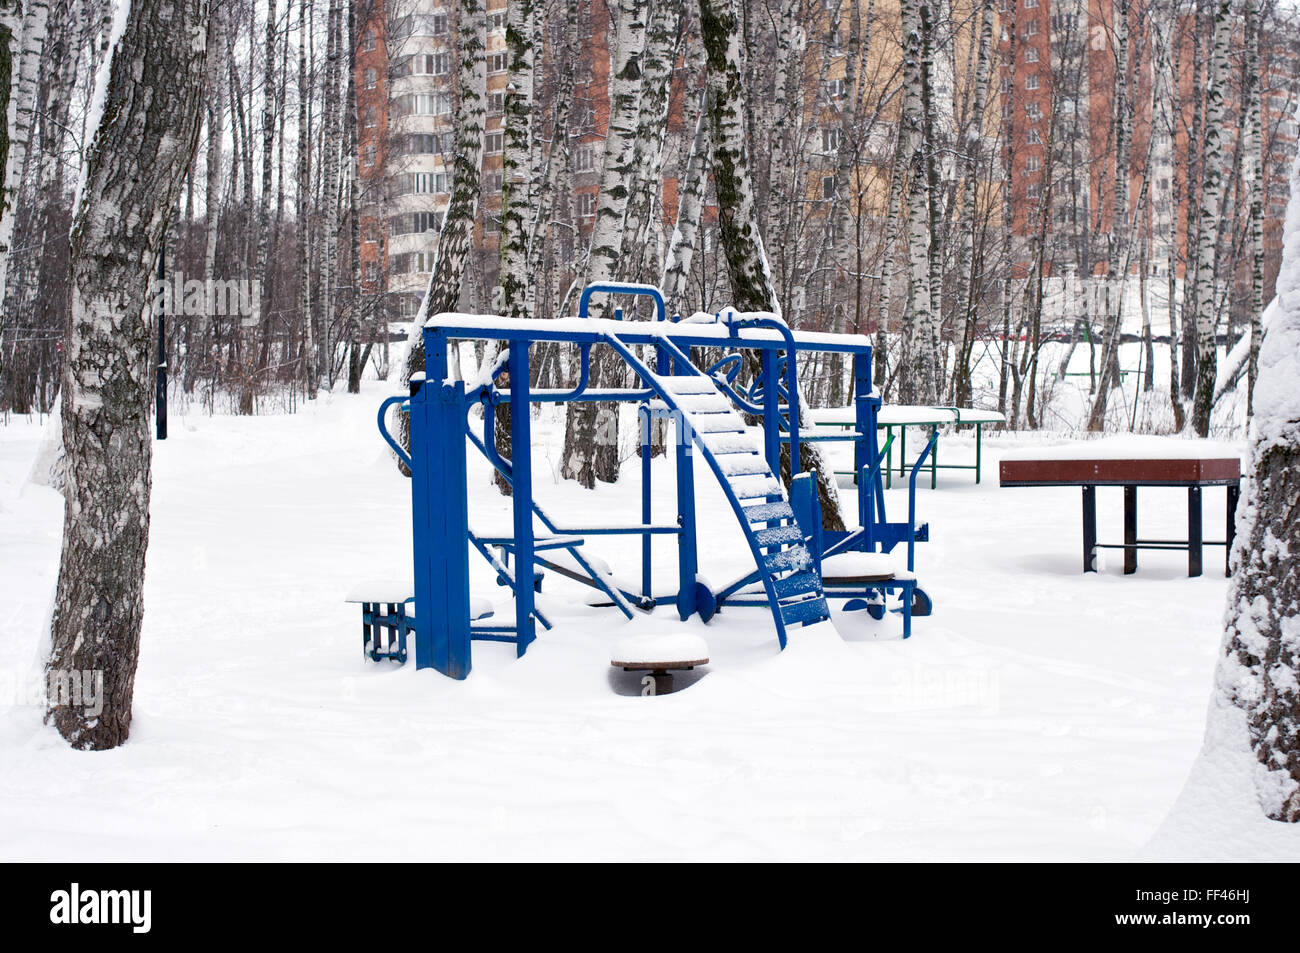 Blue exercise equipment with a lot of snow - Stock Image